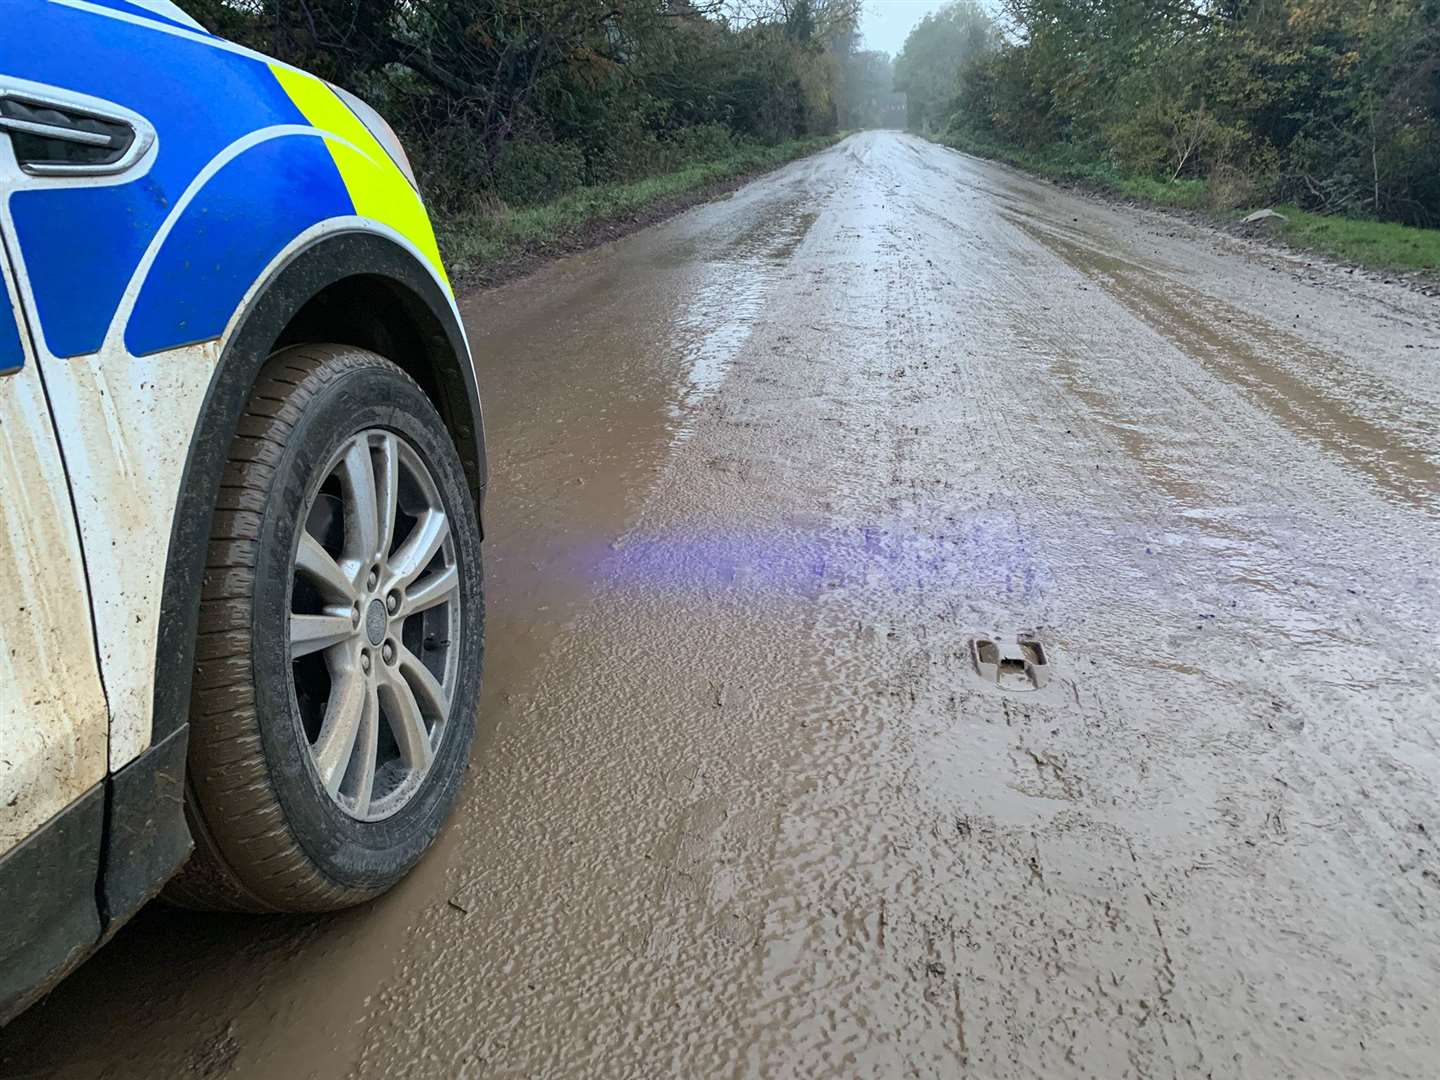 Police are at the scene of a muddy road.